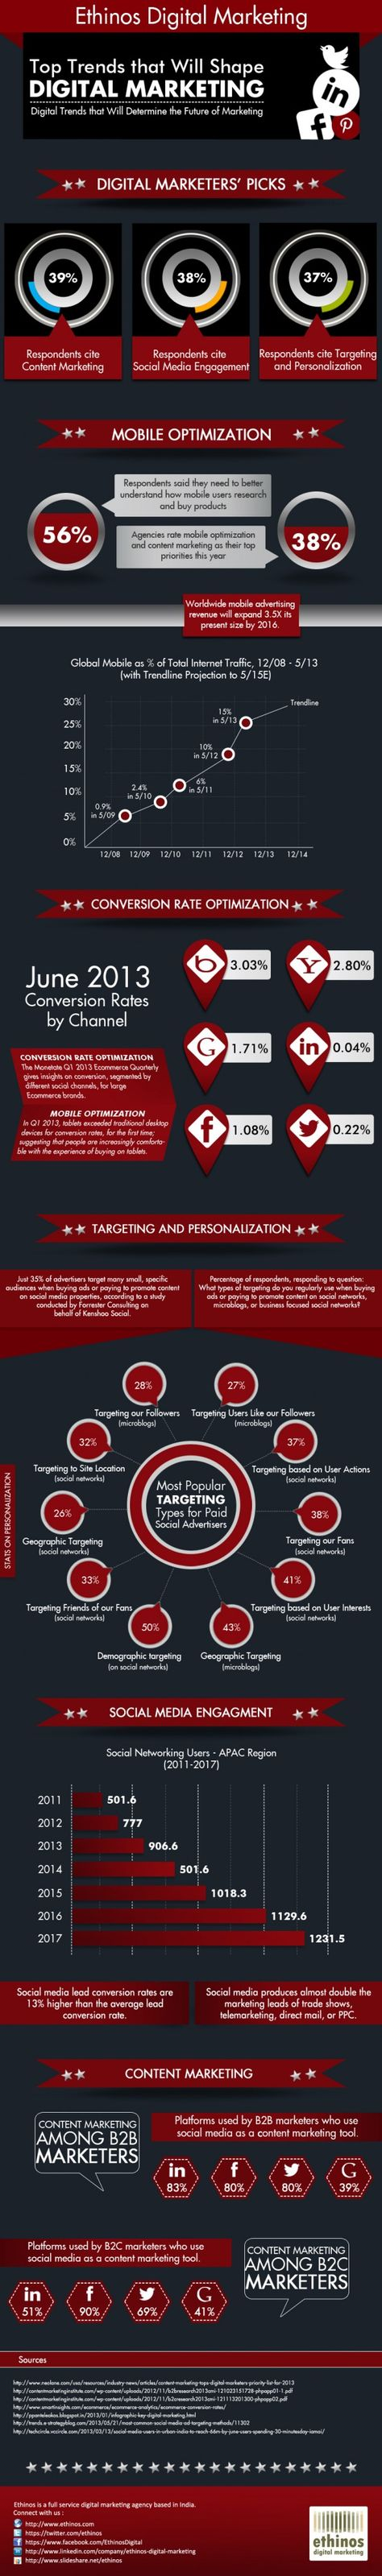 On The Top Trends That Will Shape Digital Marketing